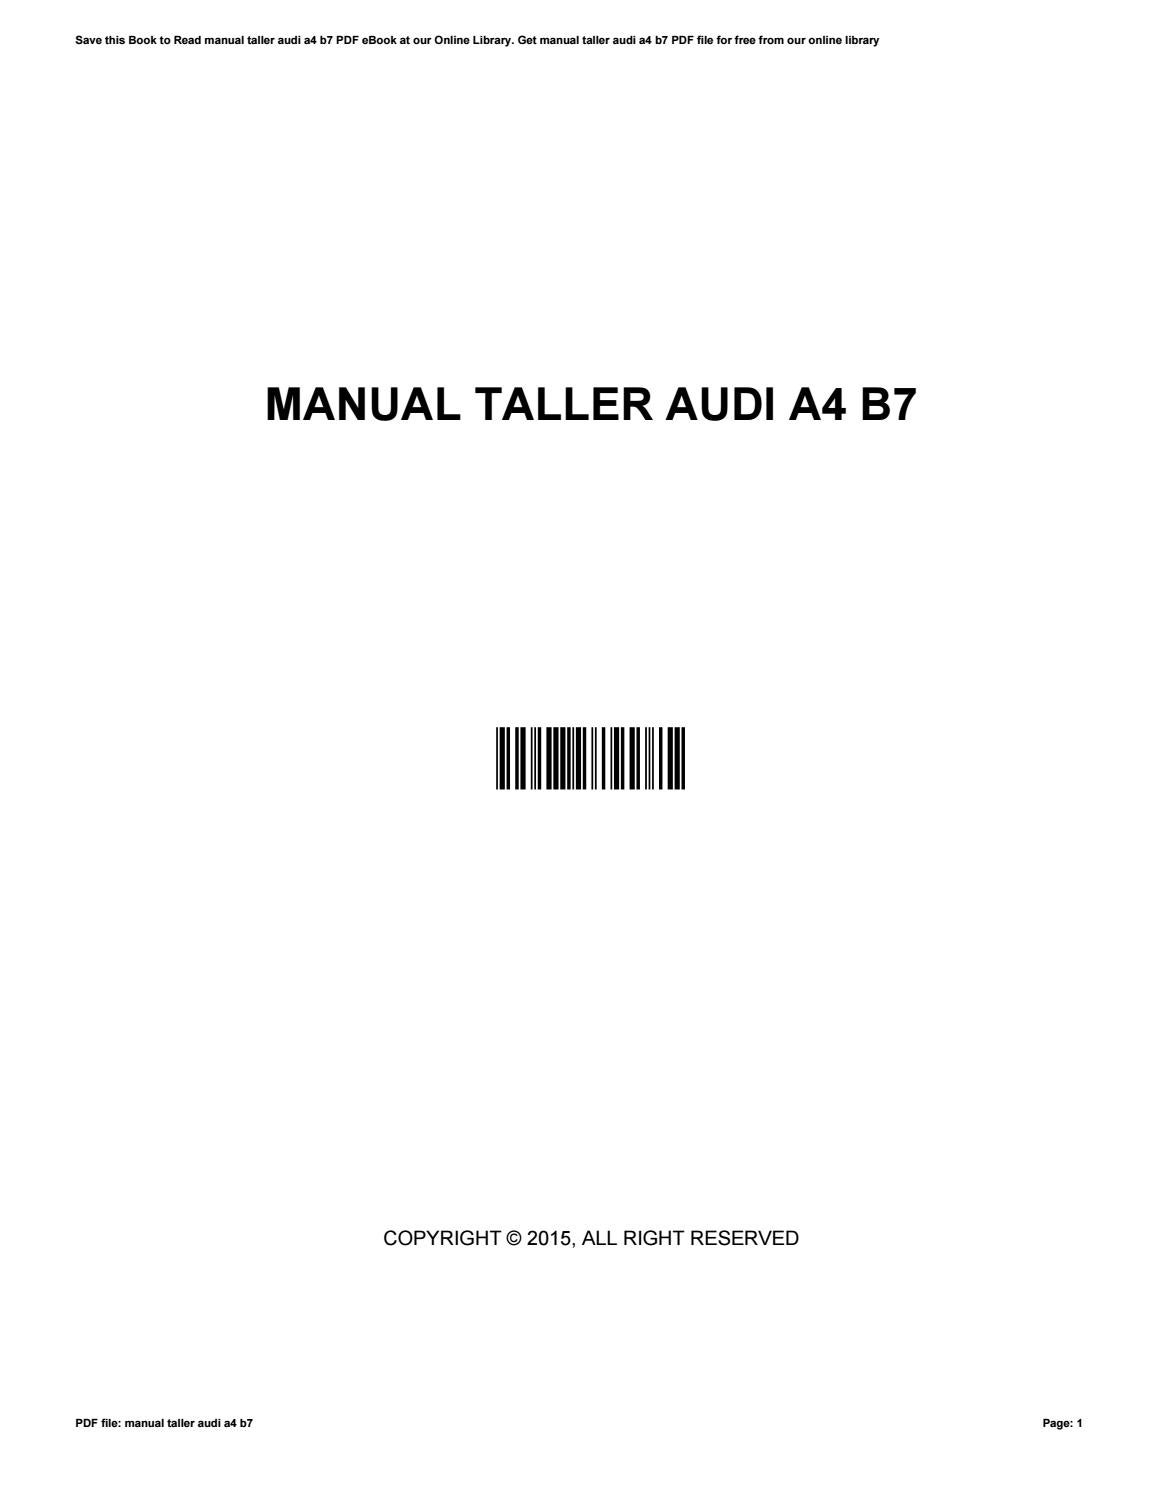 Manual taller audi a4 b7 by lucillevang1664 issuu fandeluxe Choice Image